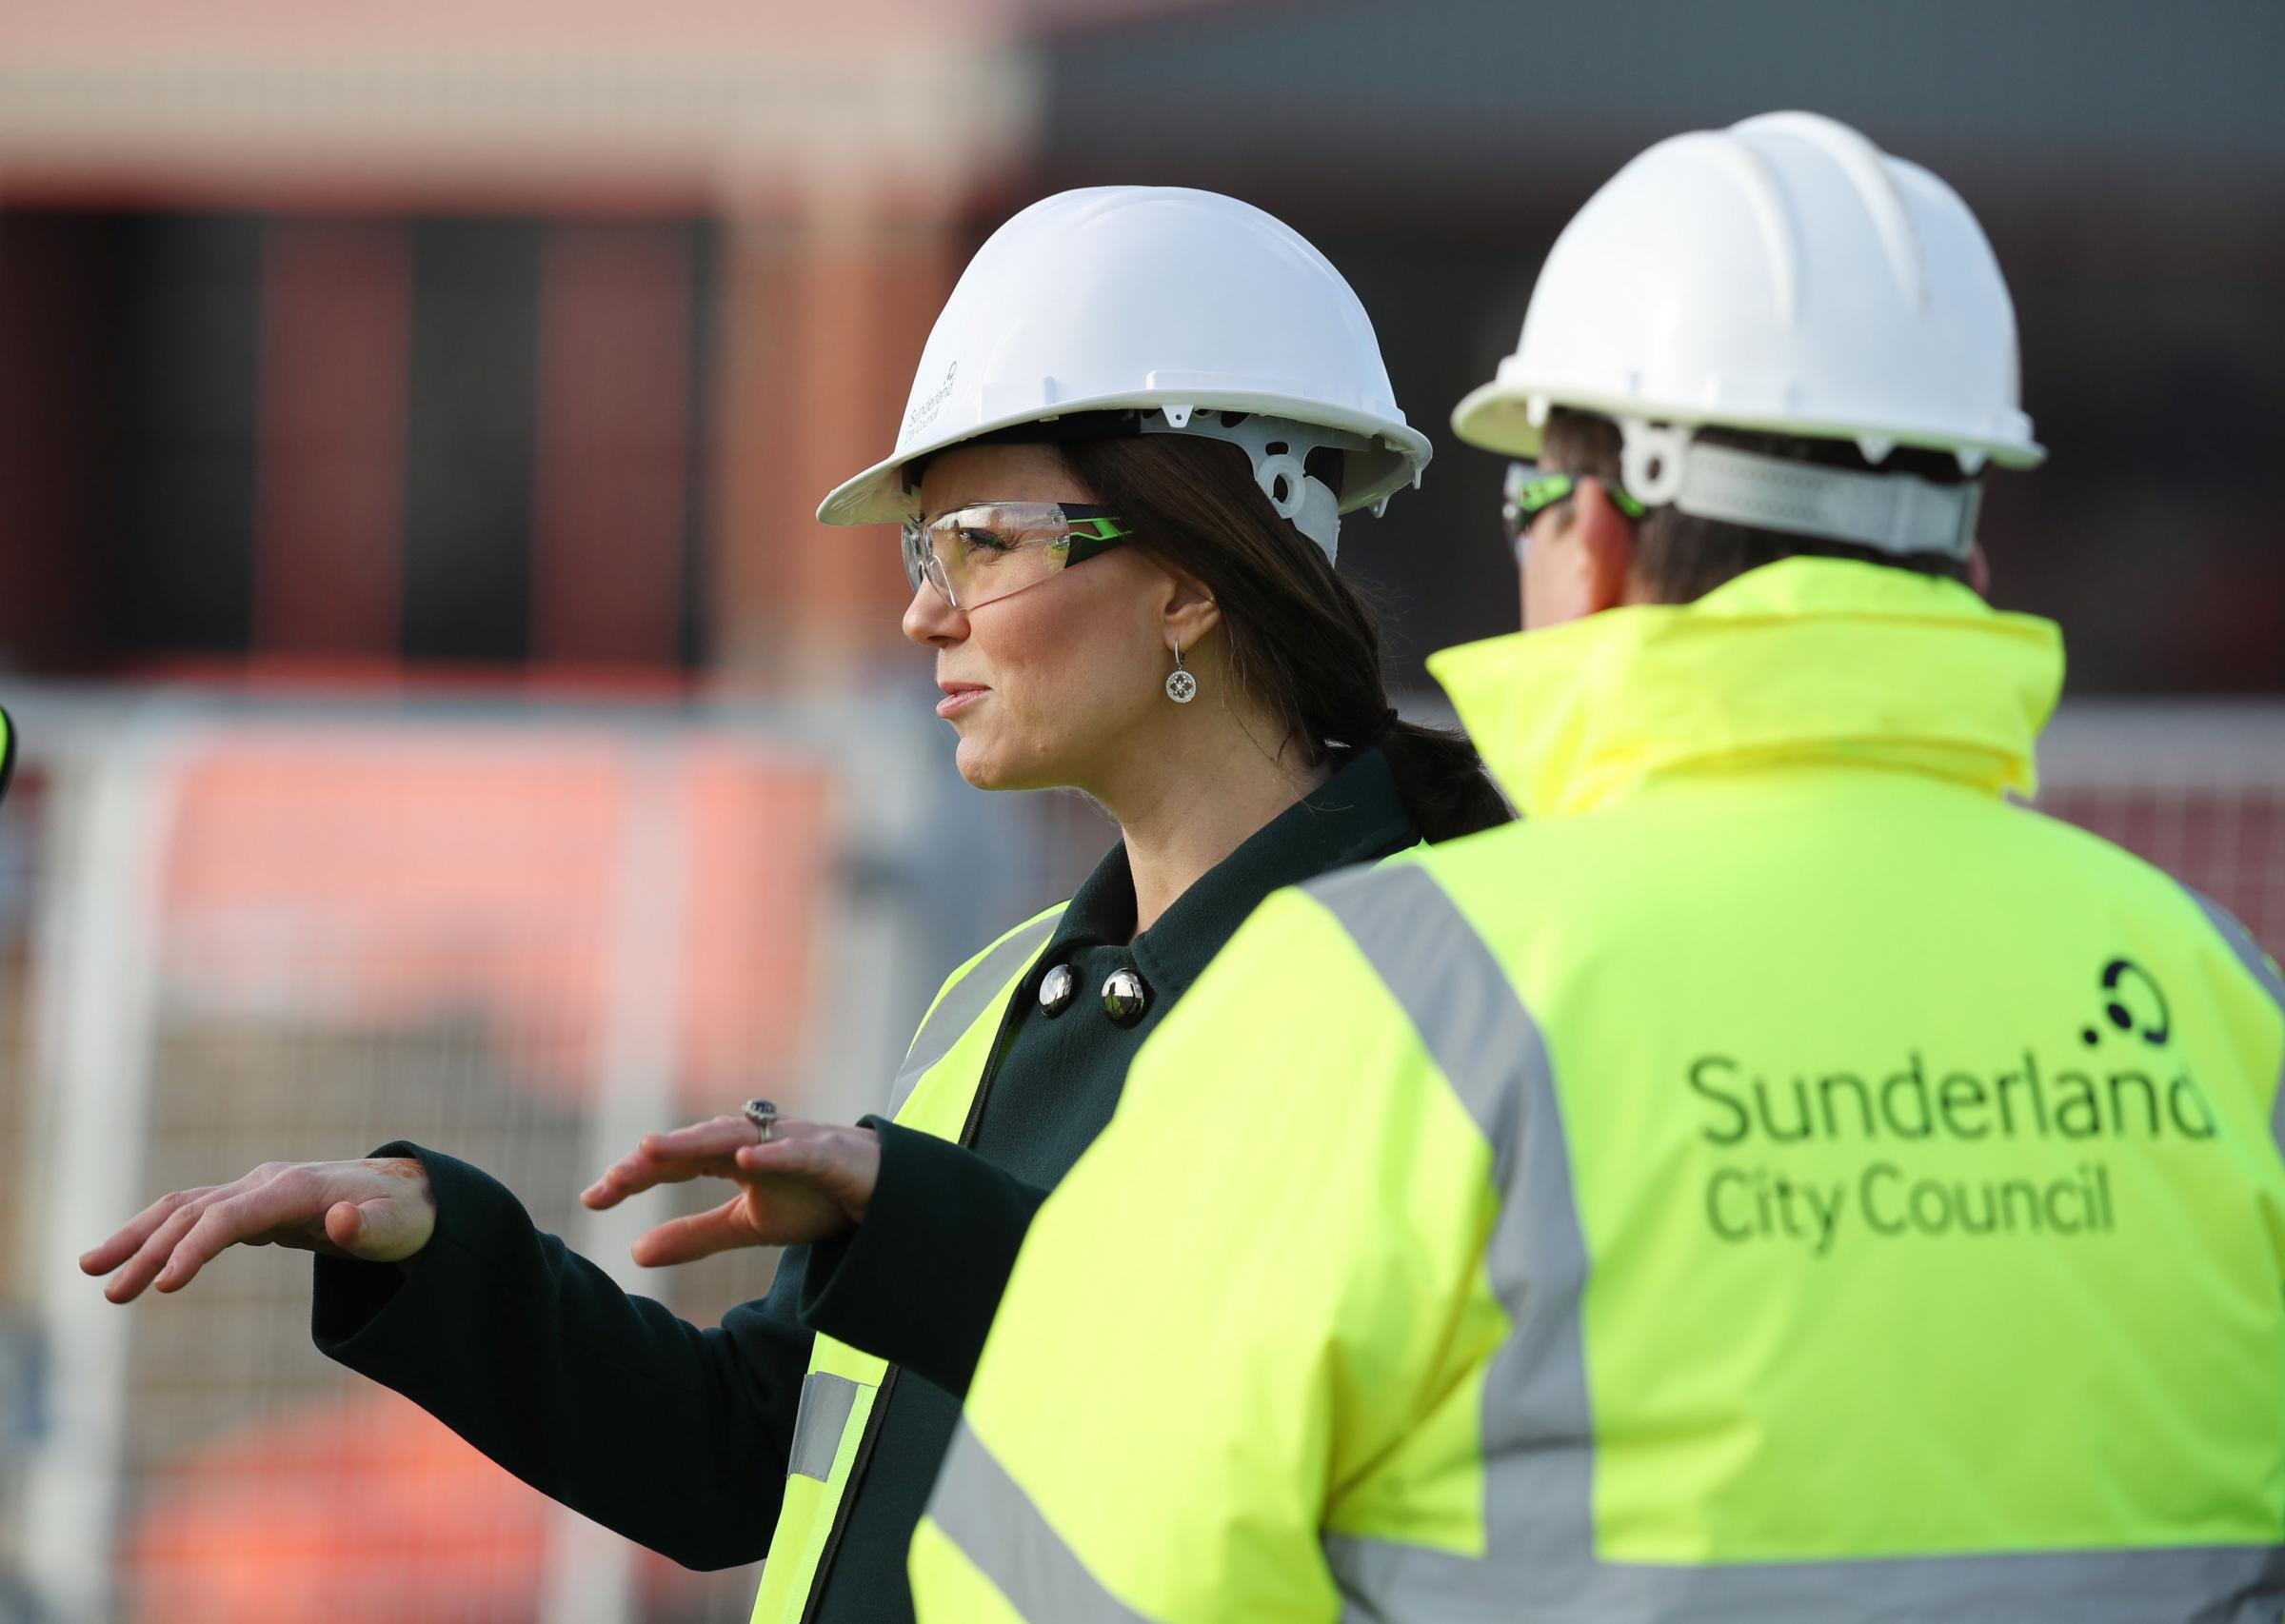 The Duchess of Cambridge wears a safety helmet during a visit to the Northern Spire bridge across the River Wear in Sunderland. Picture: PA